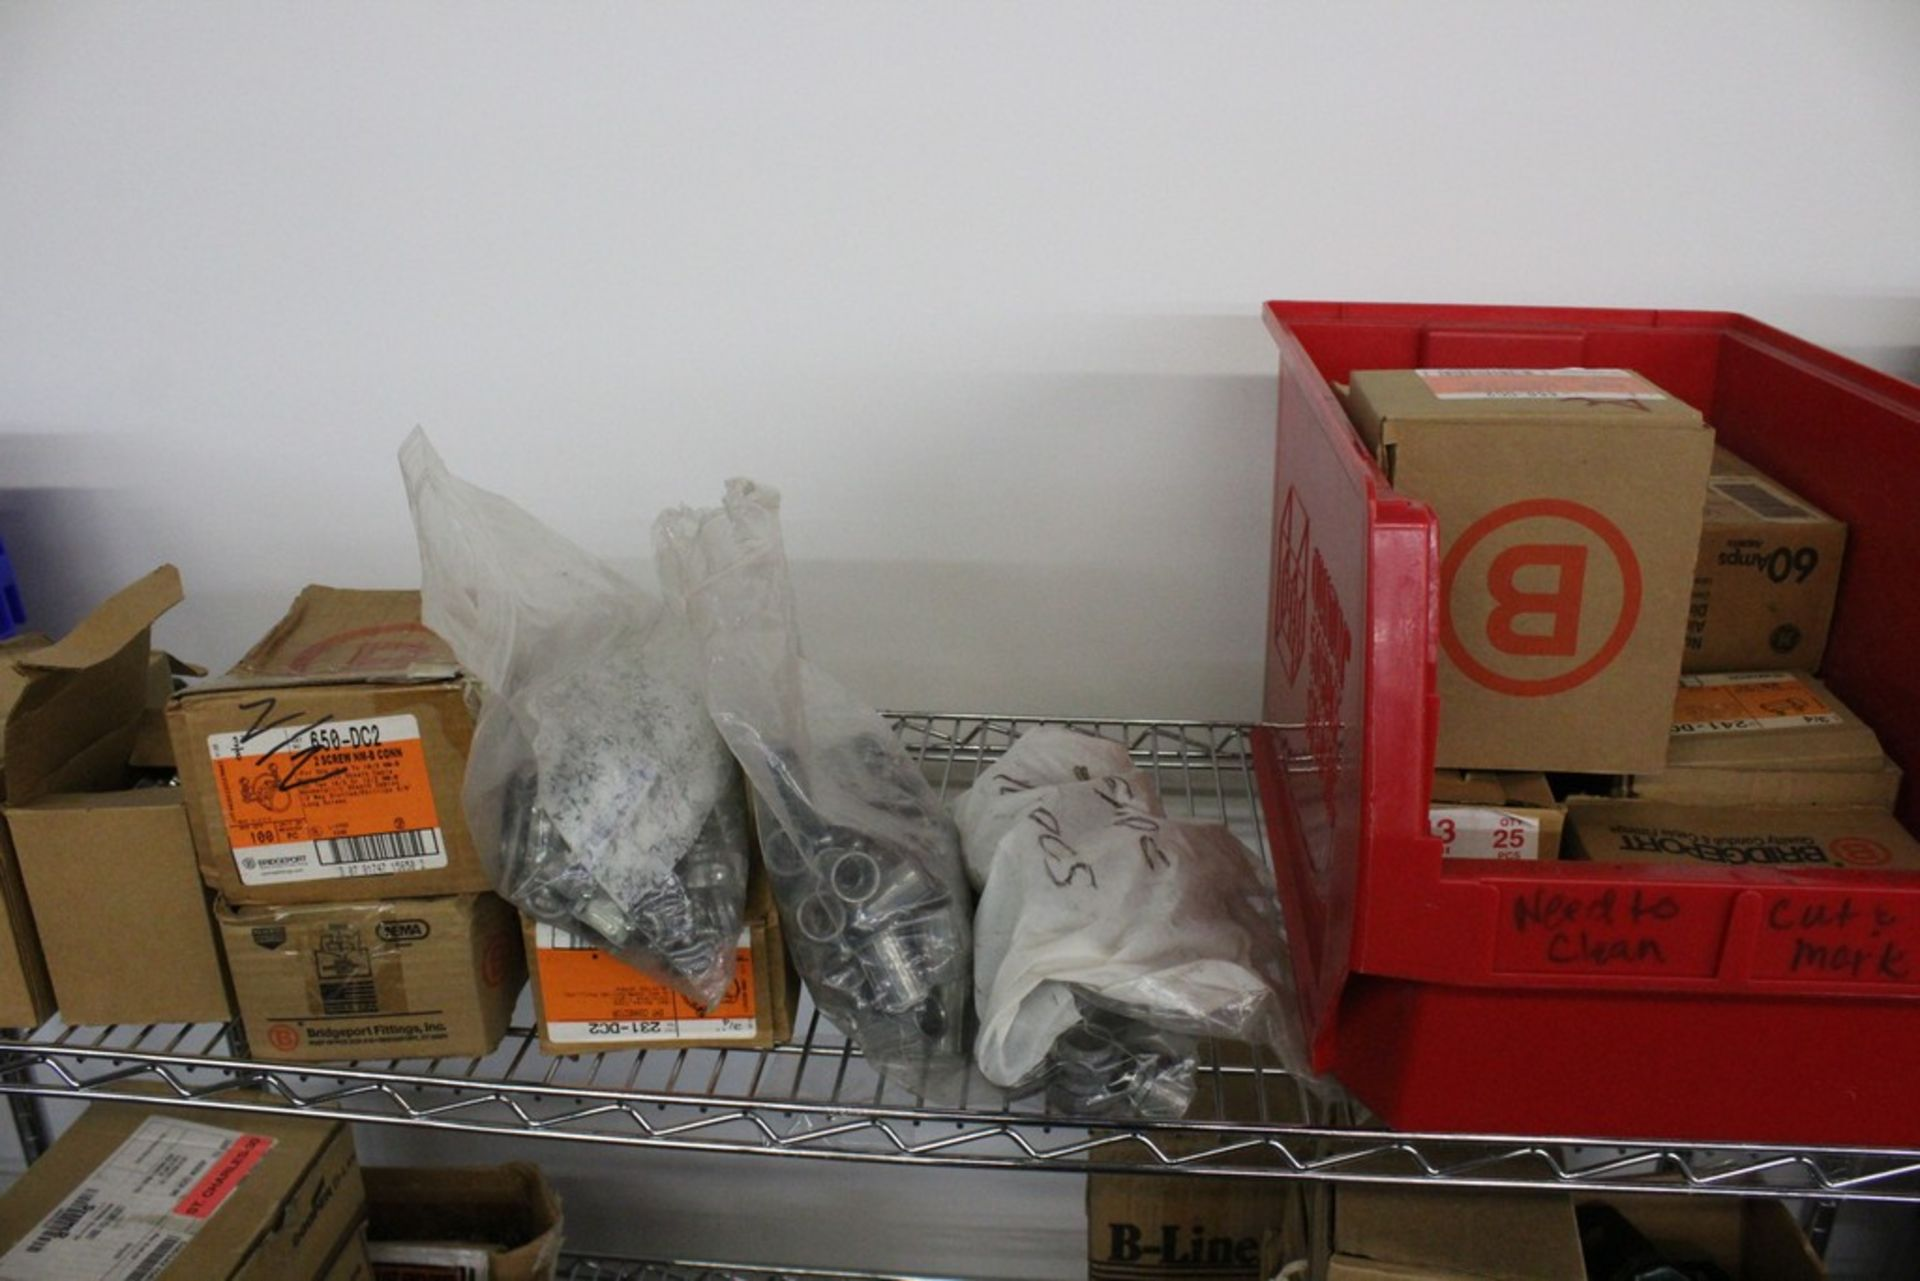 Lot 2019 - WIRING COMPONENTS ON SHELF